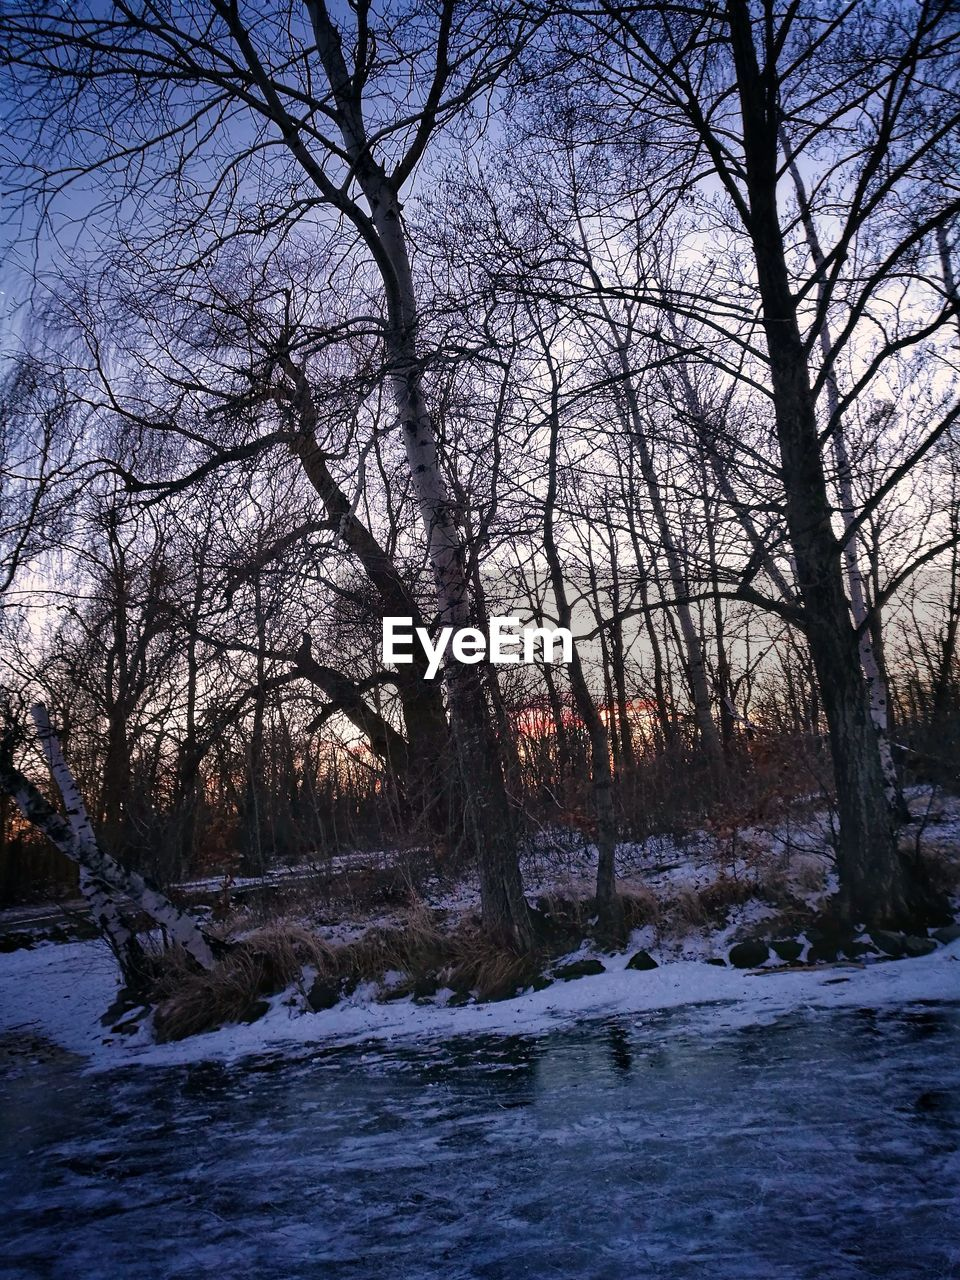 bare tree, tree, winter, river, cold temperature, nature, tranquility, water, beauty in nature, no people, outdoors, snow, tranquil scene, branch, waterfront, scenics, day, landscape, forest, sky, waterfall, clear sky